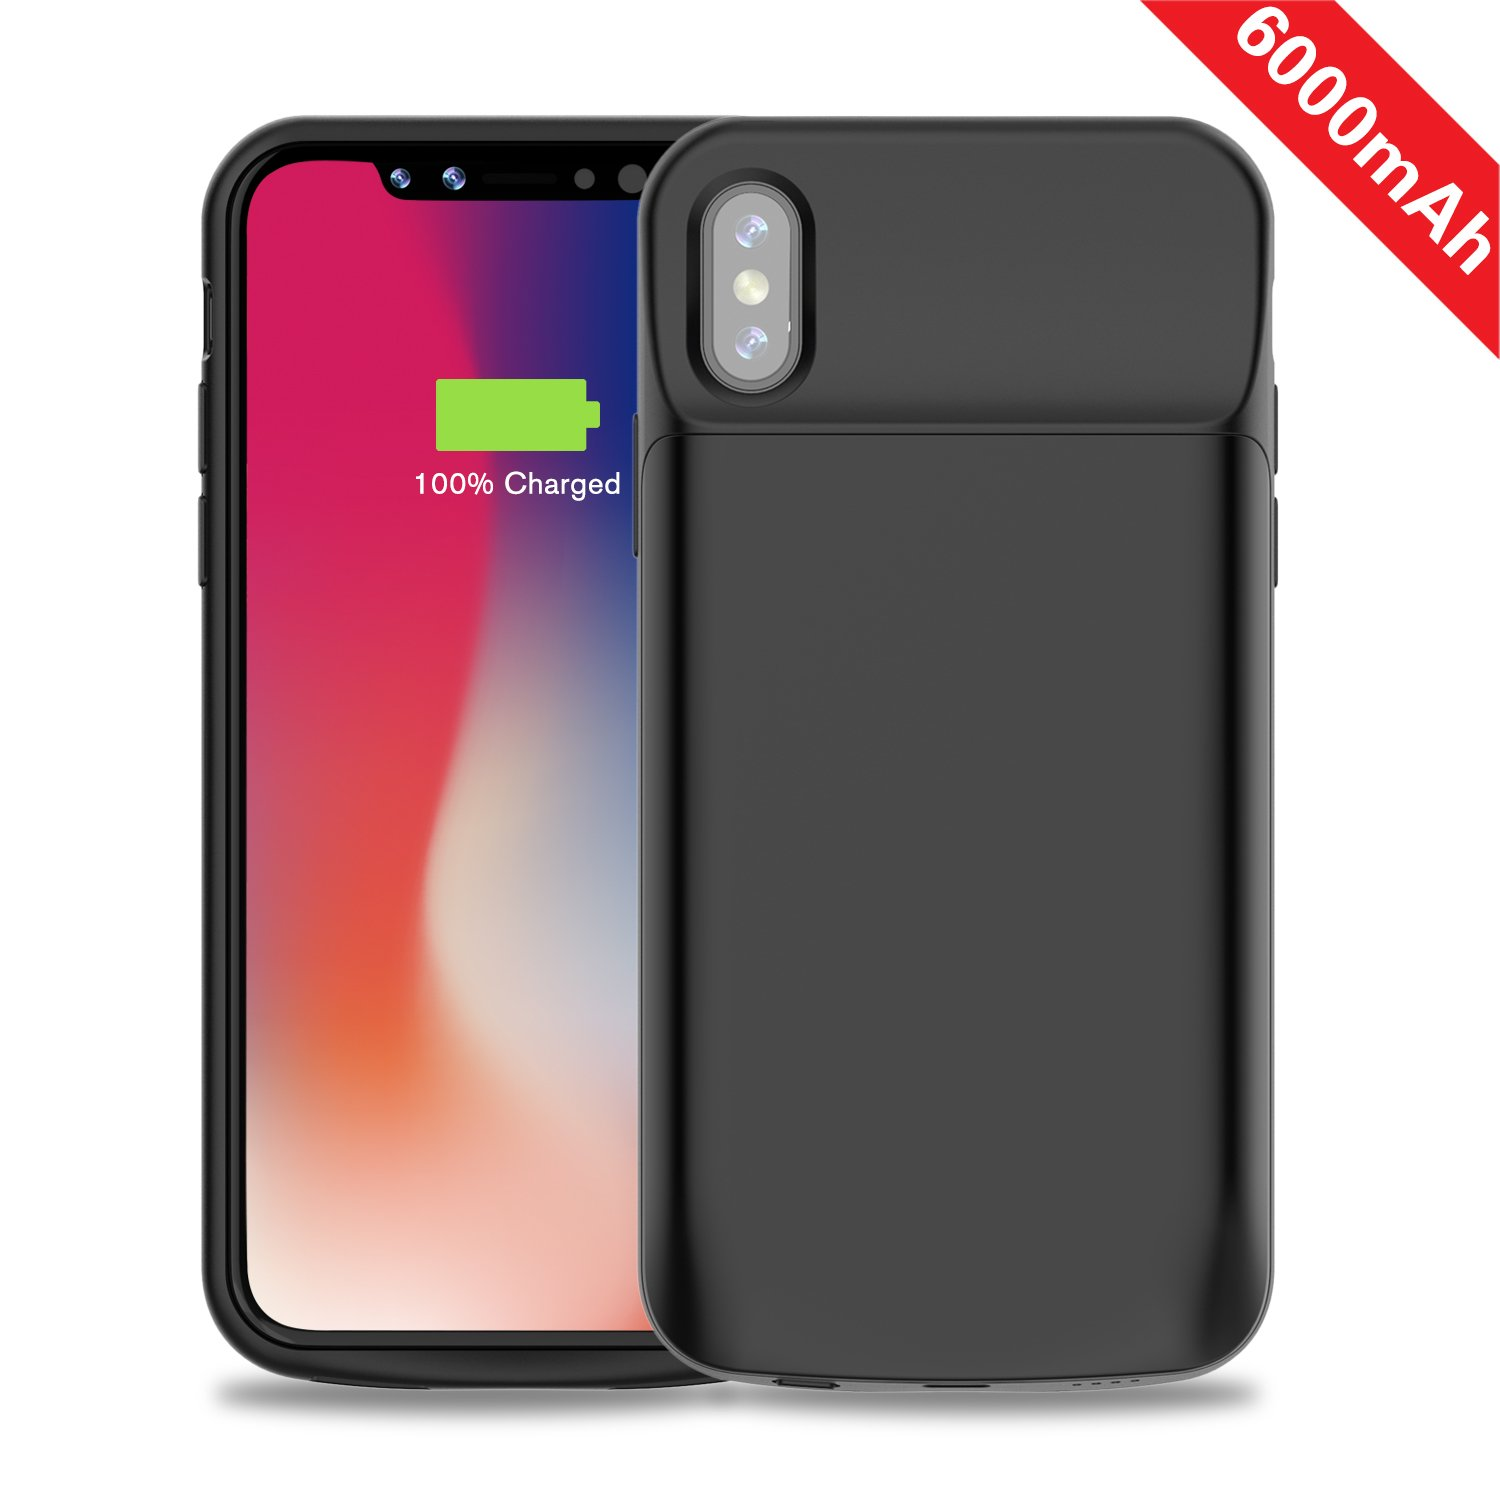 iPhone X Battery Case, Accerzone iPhone X / 10 6000mAh Extended Protective Charger Case, Rechargeable External Backup Battery Pack with Sync Through Technology for iPhone X / 10 2017 (5.8in)